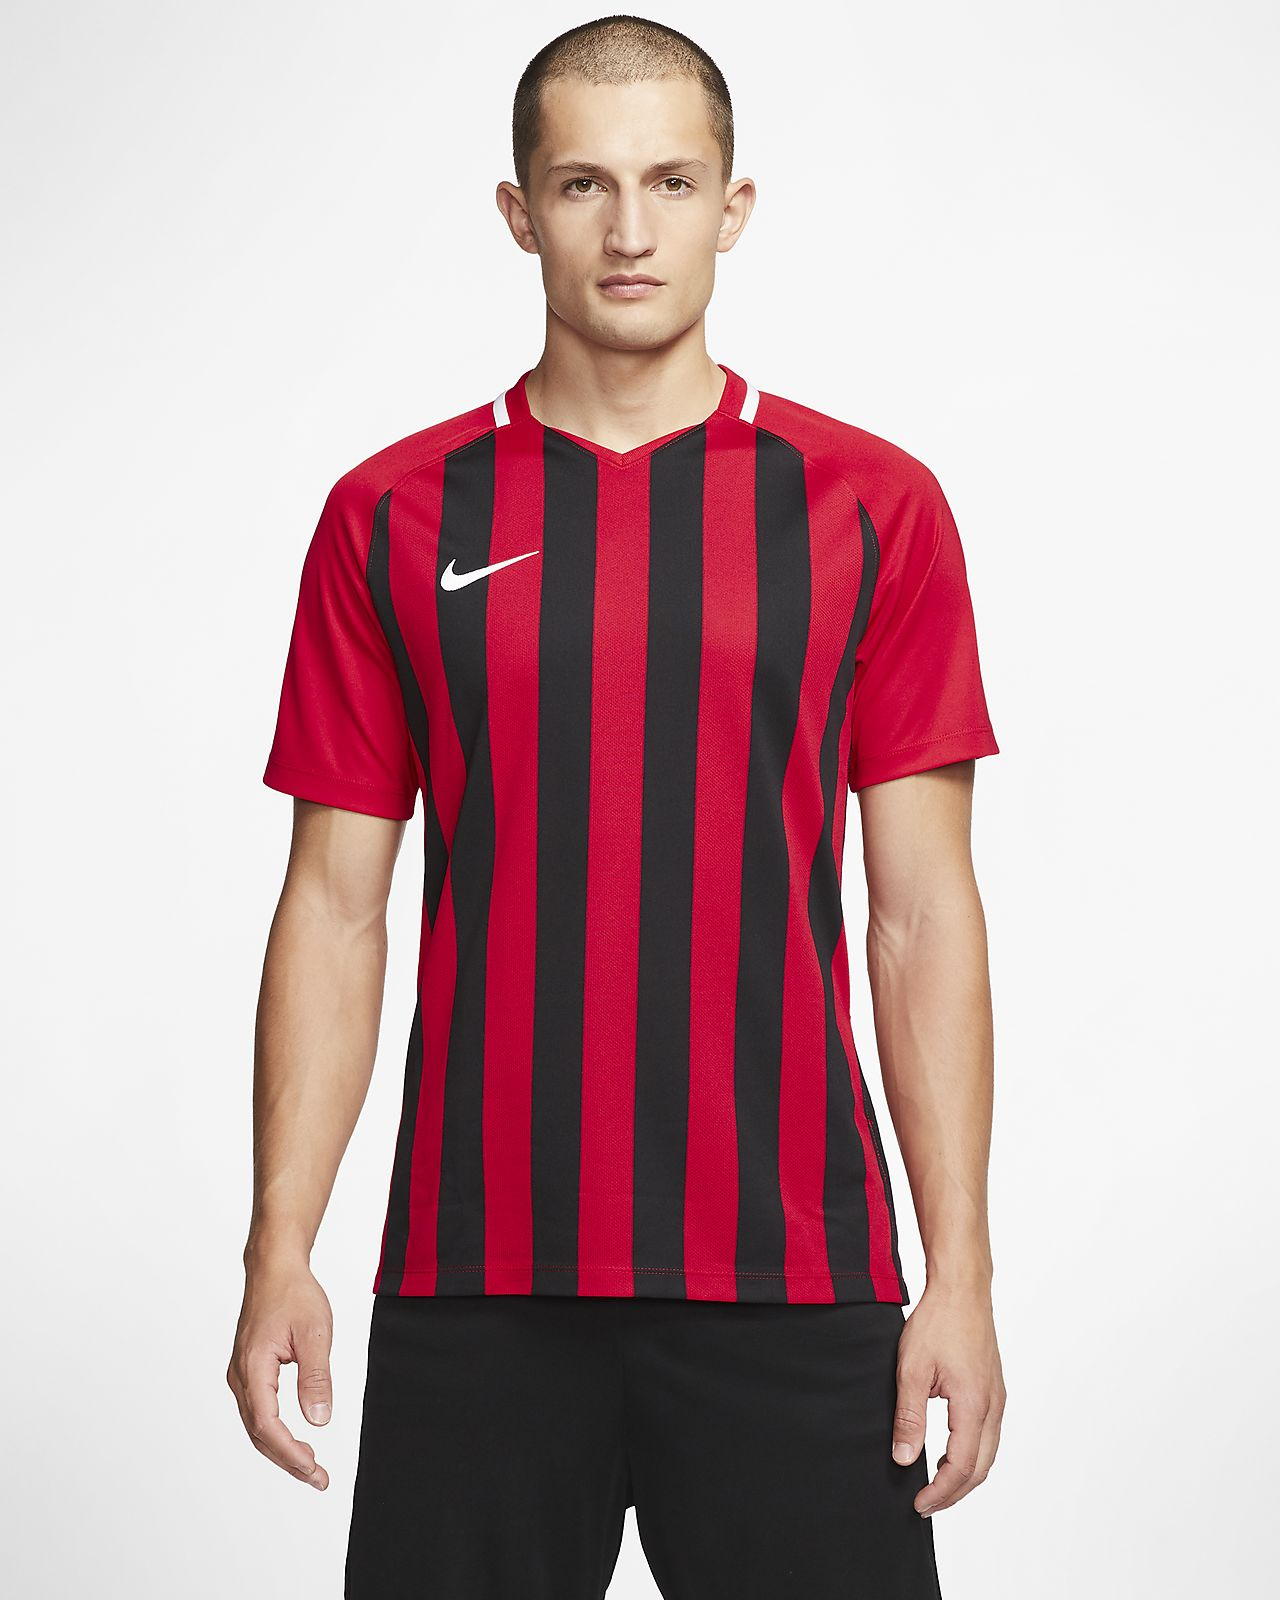 Maillot de football Nike Striped Division 3 pour Homme